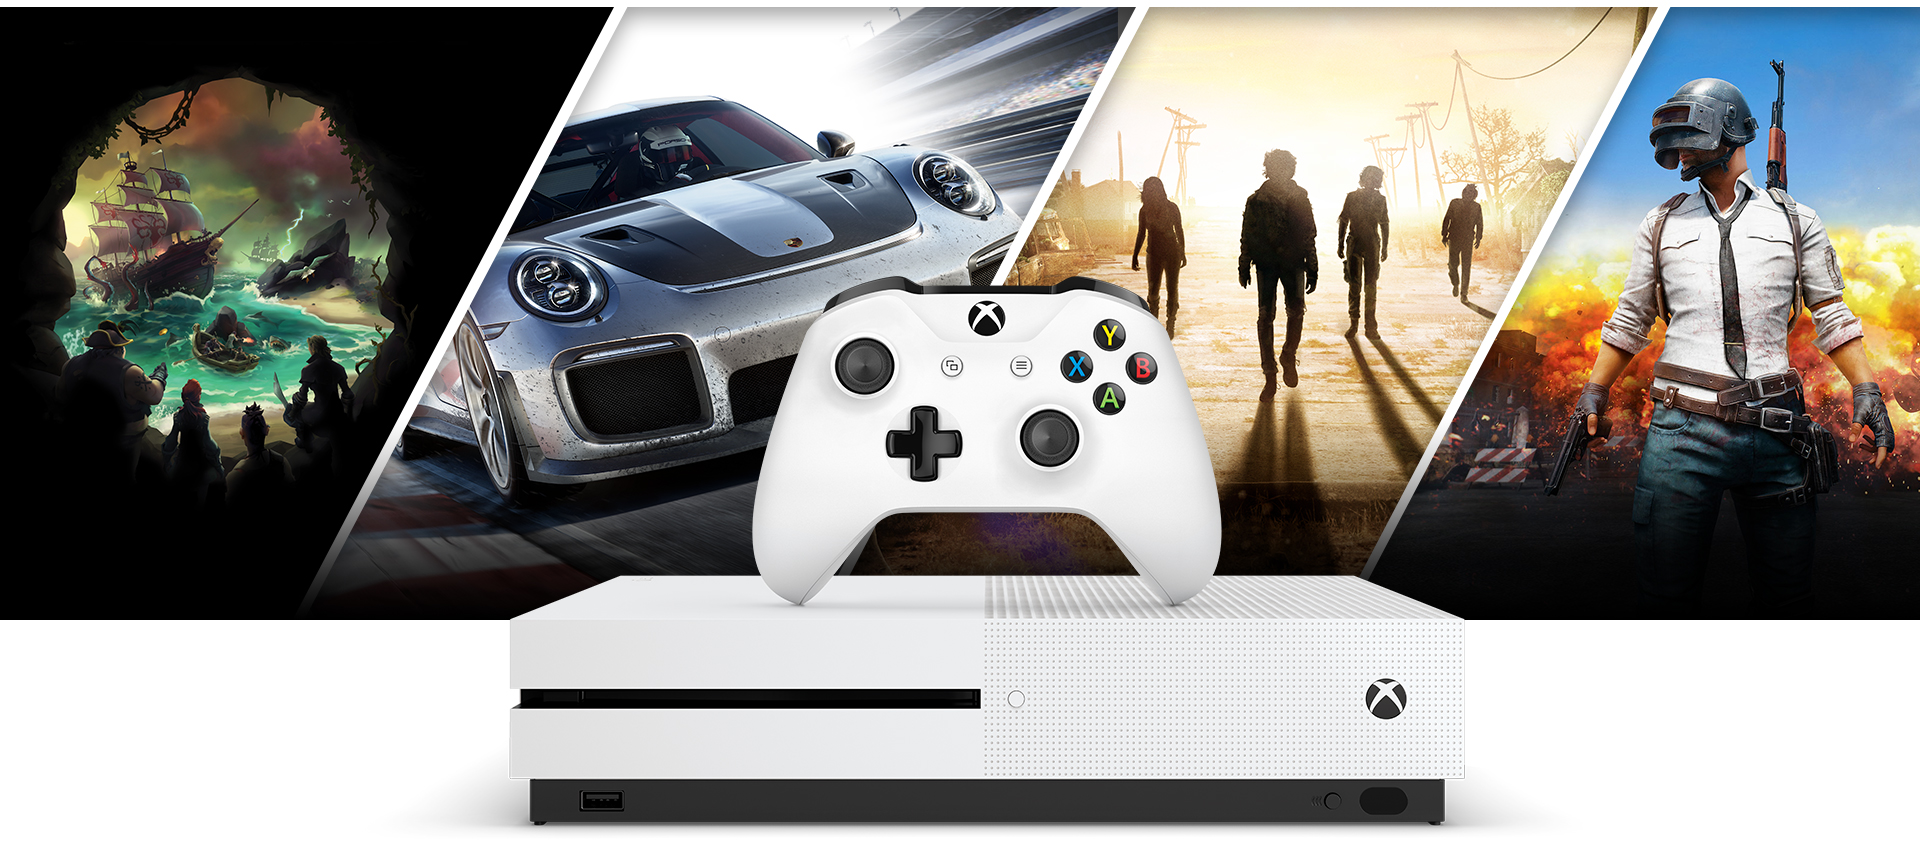 Bilder aus Sea of Thieves, Forza 7, State of Decay 3 und Player Unknown's Battlegrounds hinter einer Xbox One S und einem weißen Xbox Controller